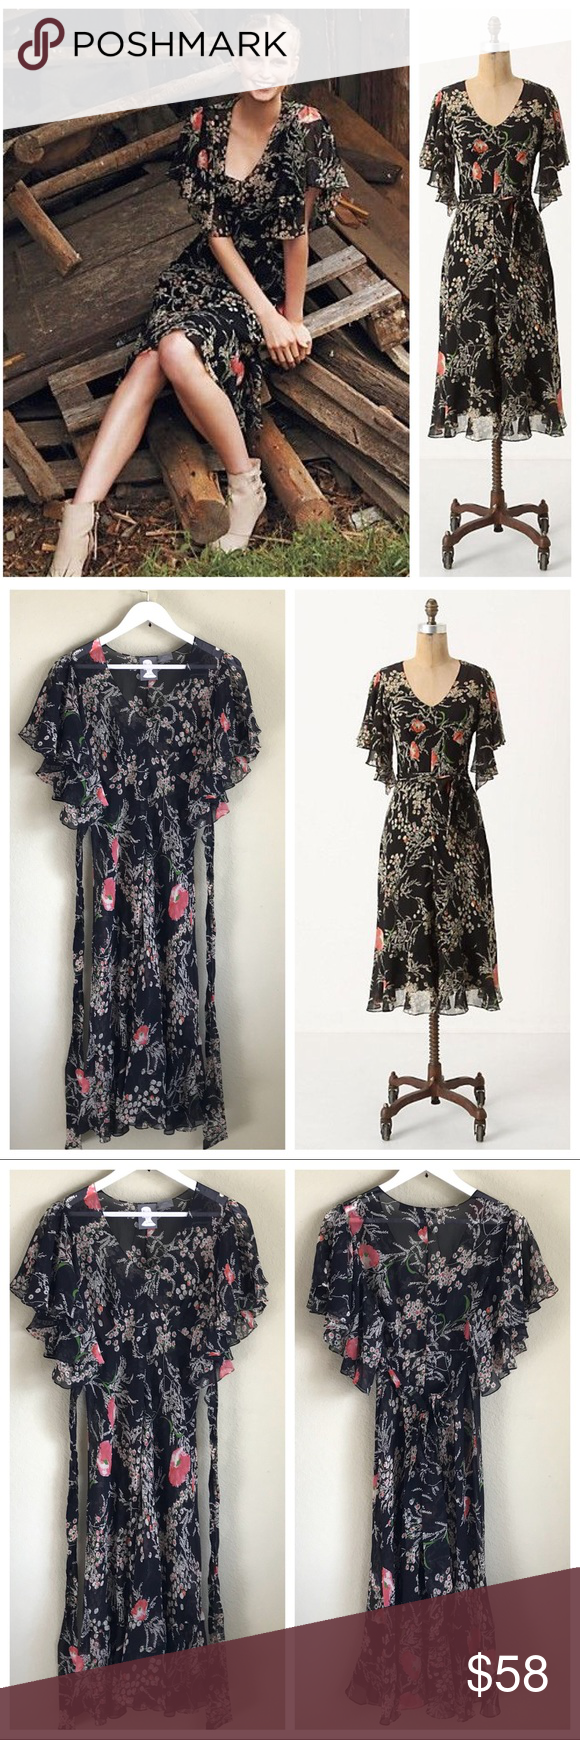 """ANTHROPOLOGIE Silk Floral FLORI Dress ANTHROPOLOGIE """"Girls From Savoy"""" """"FLORI"""" Dress Size 8  Empire waist, lovely ruffled sleeves, attached sash which ties in the back or the front. 100% Silk  Semi-Sheer Sold without a black slip and price adjusted to reflect missing piece EUC  Measurements taken while laying garment flat (one side) - approx: ~Bust 19"""" ~Length 46""""  :::: Thank you for looking and please check out the rest of my closet. ::: Anthropologie Dresses Midi"""